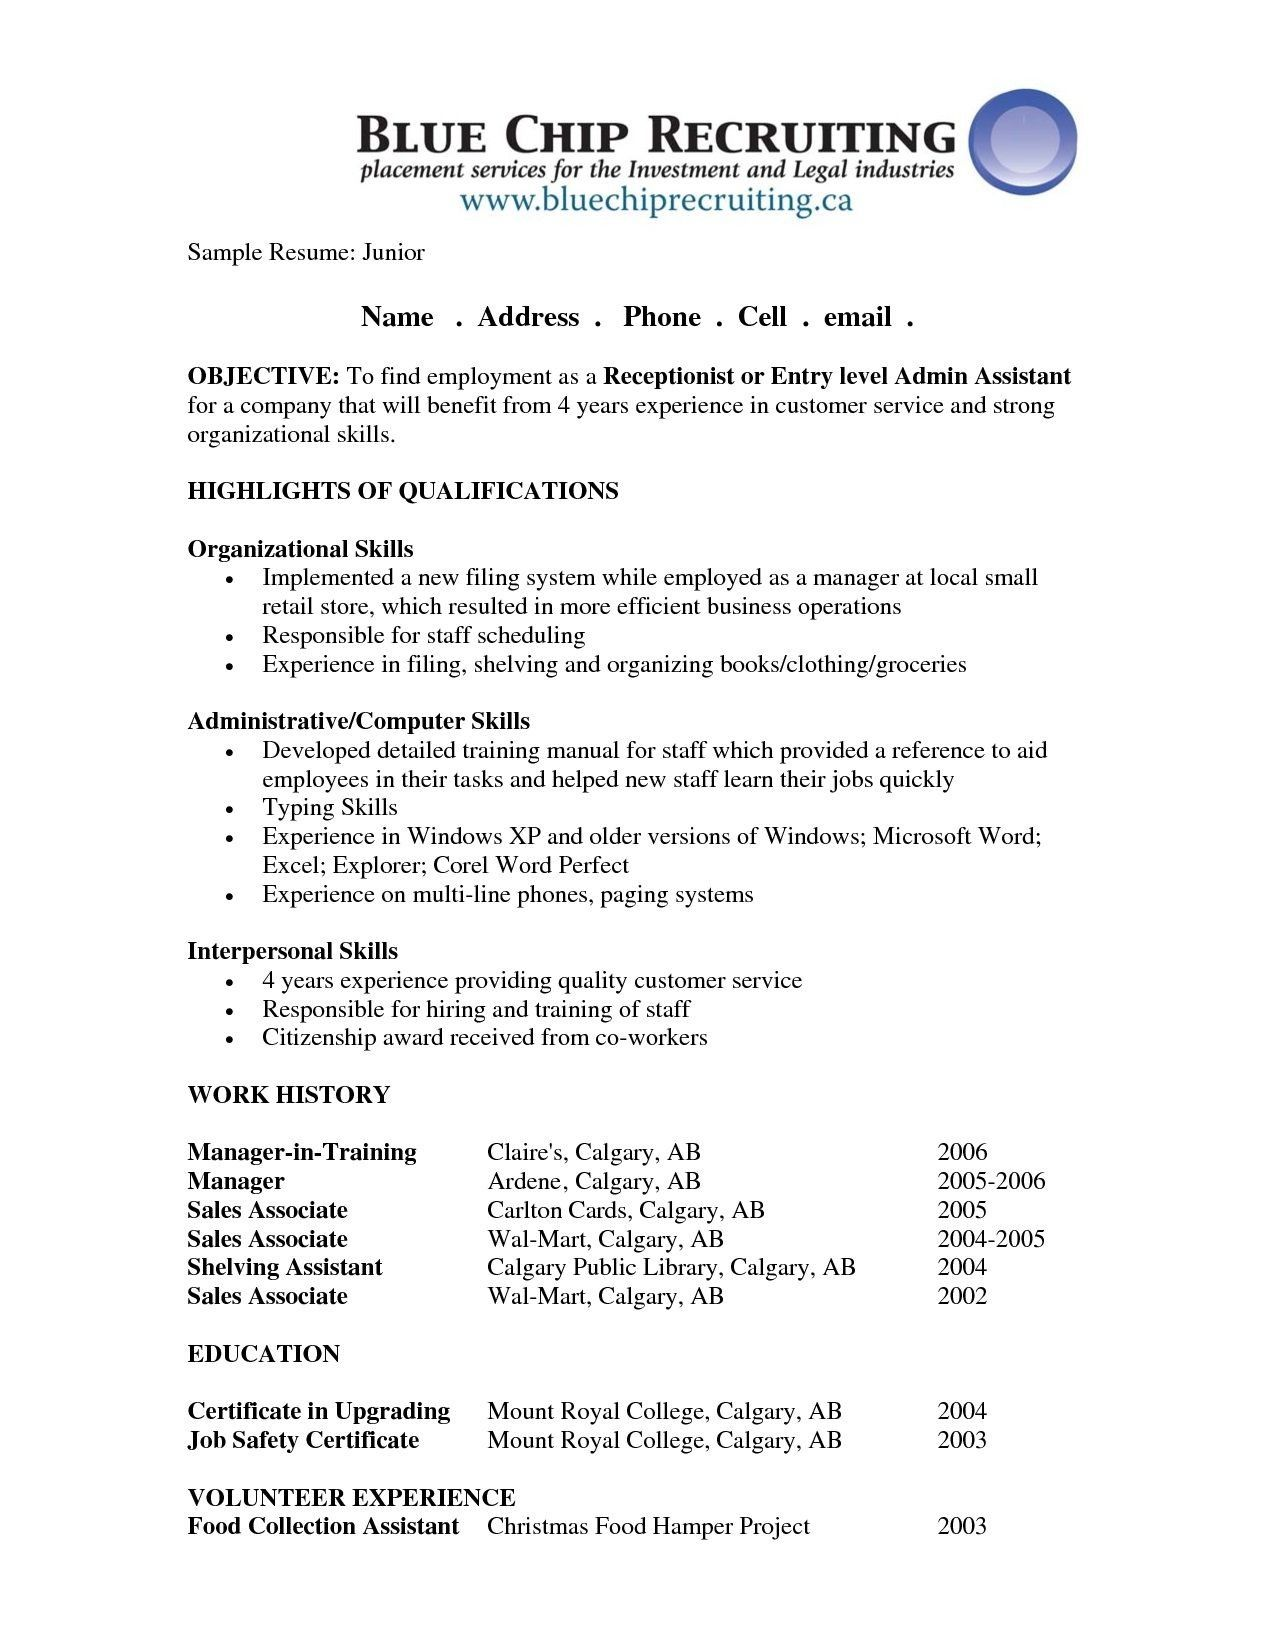 Best 20 Objectives for A Resume Good objective for